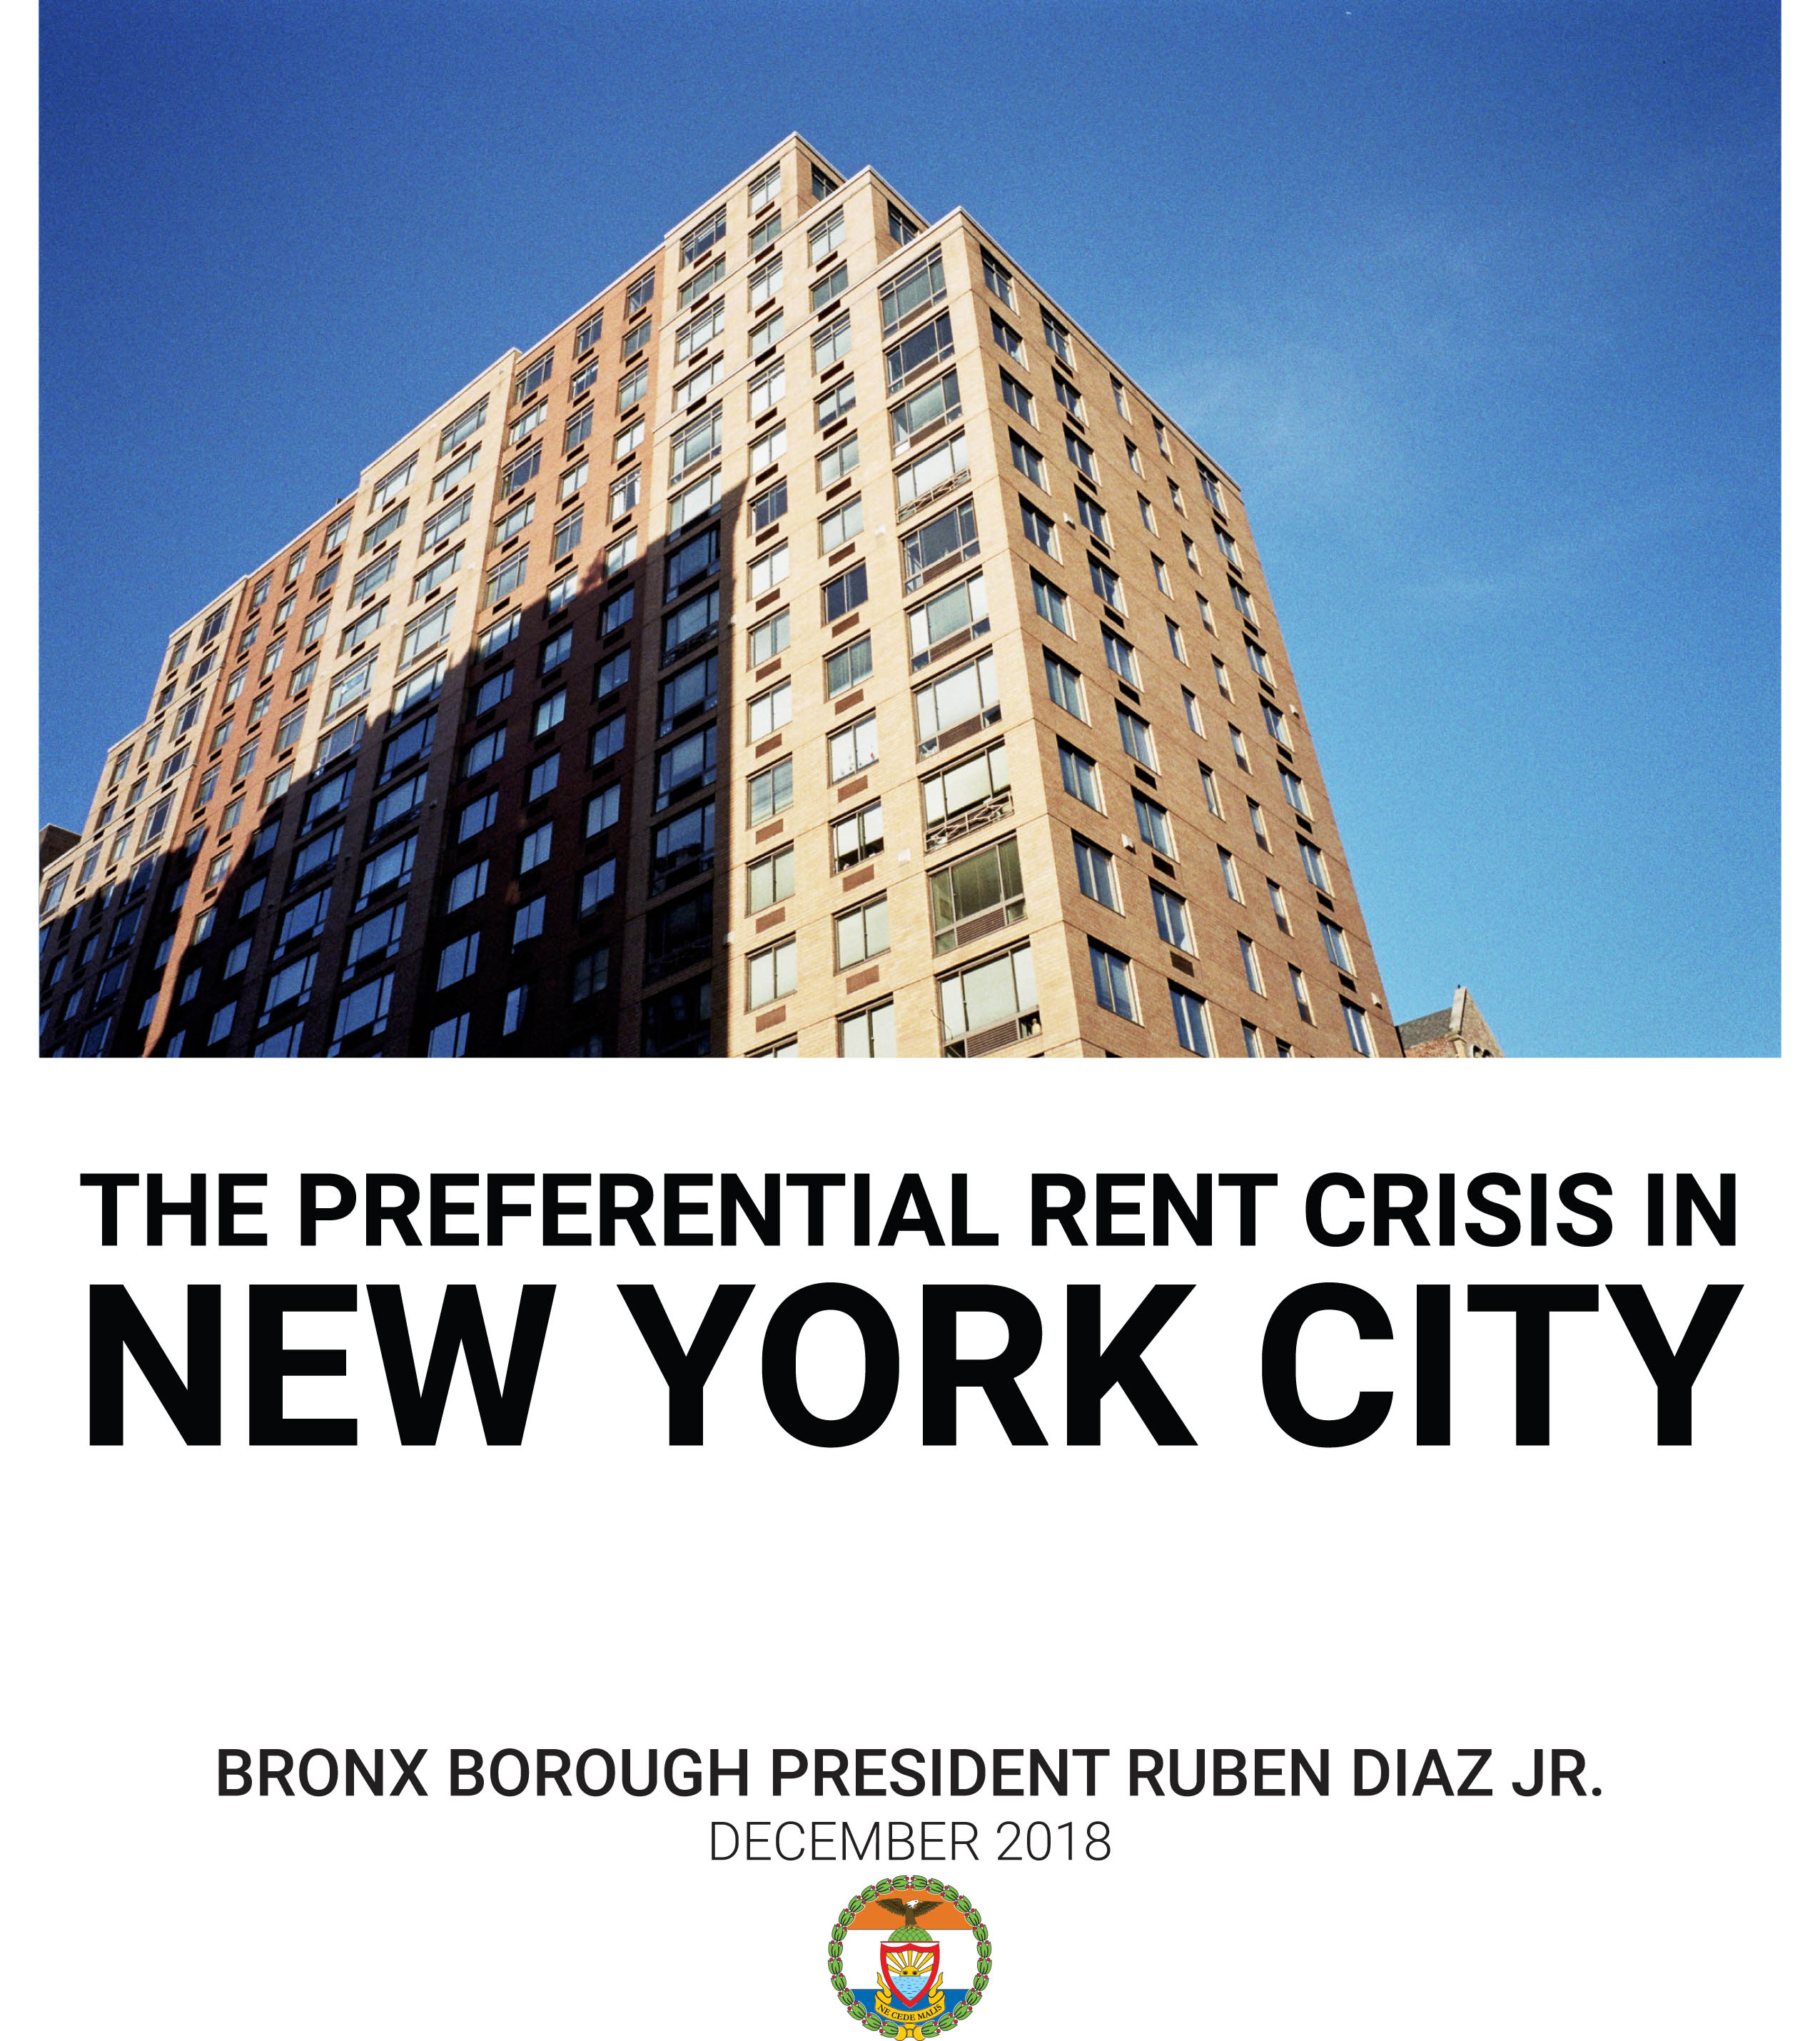 Rents In New York City: BP DIAZ ISSUES NEW REPORT: 'THE PREFERENTIAL RENT CRISIS